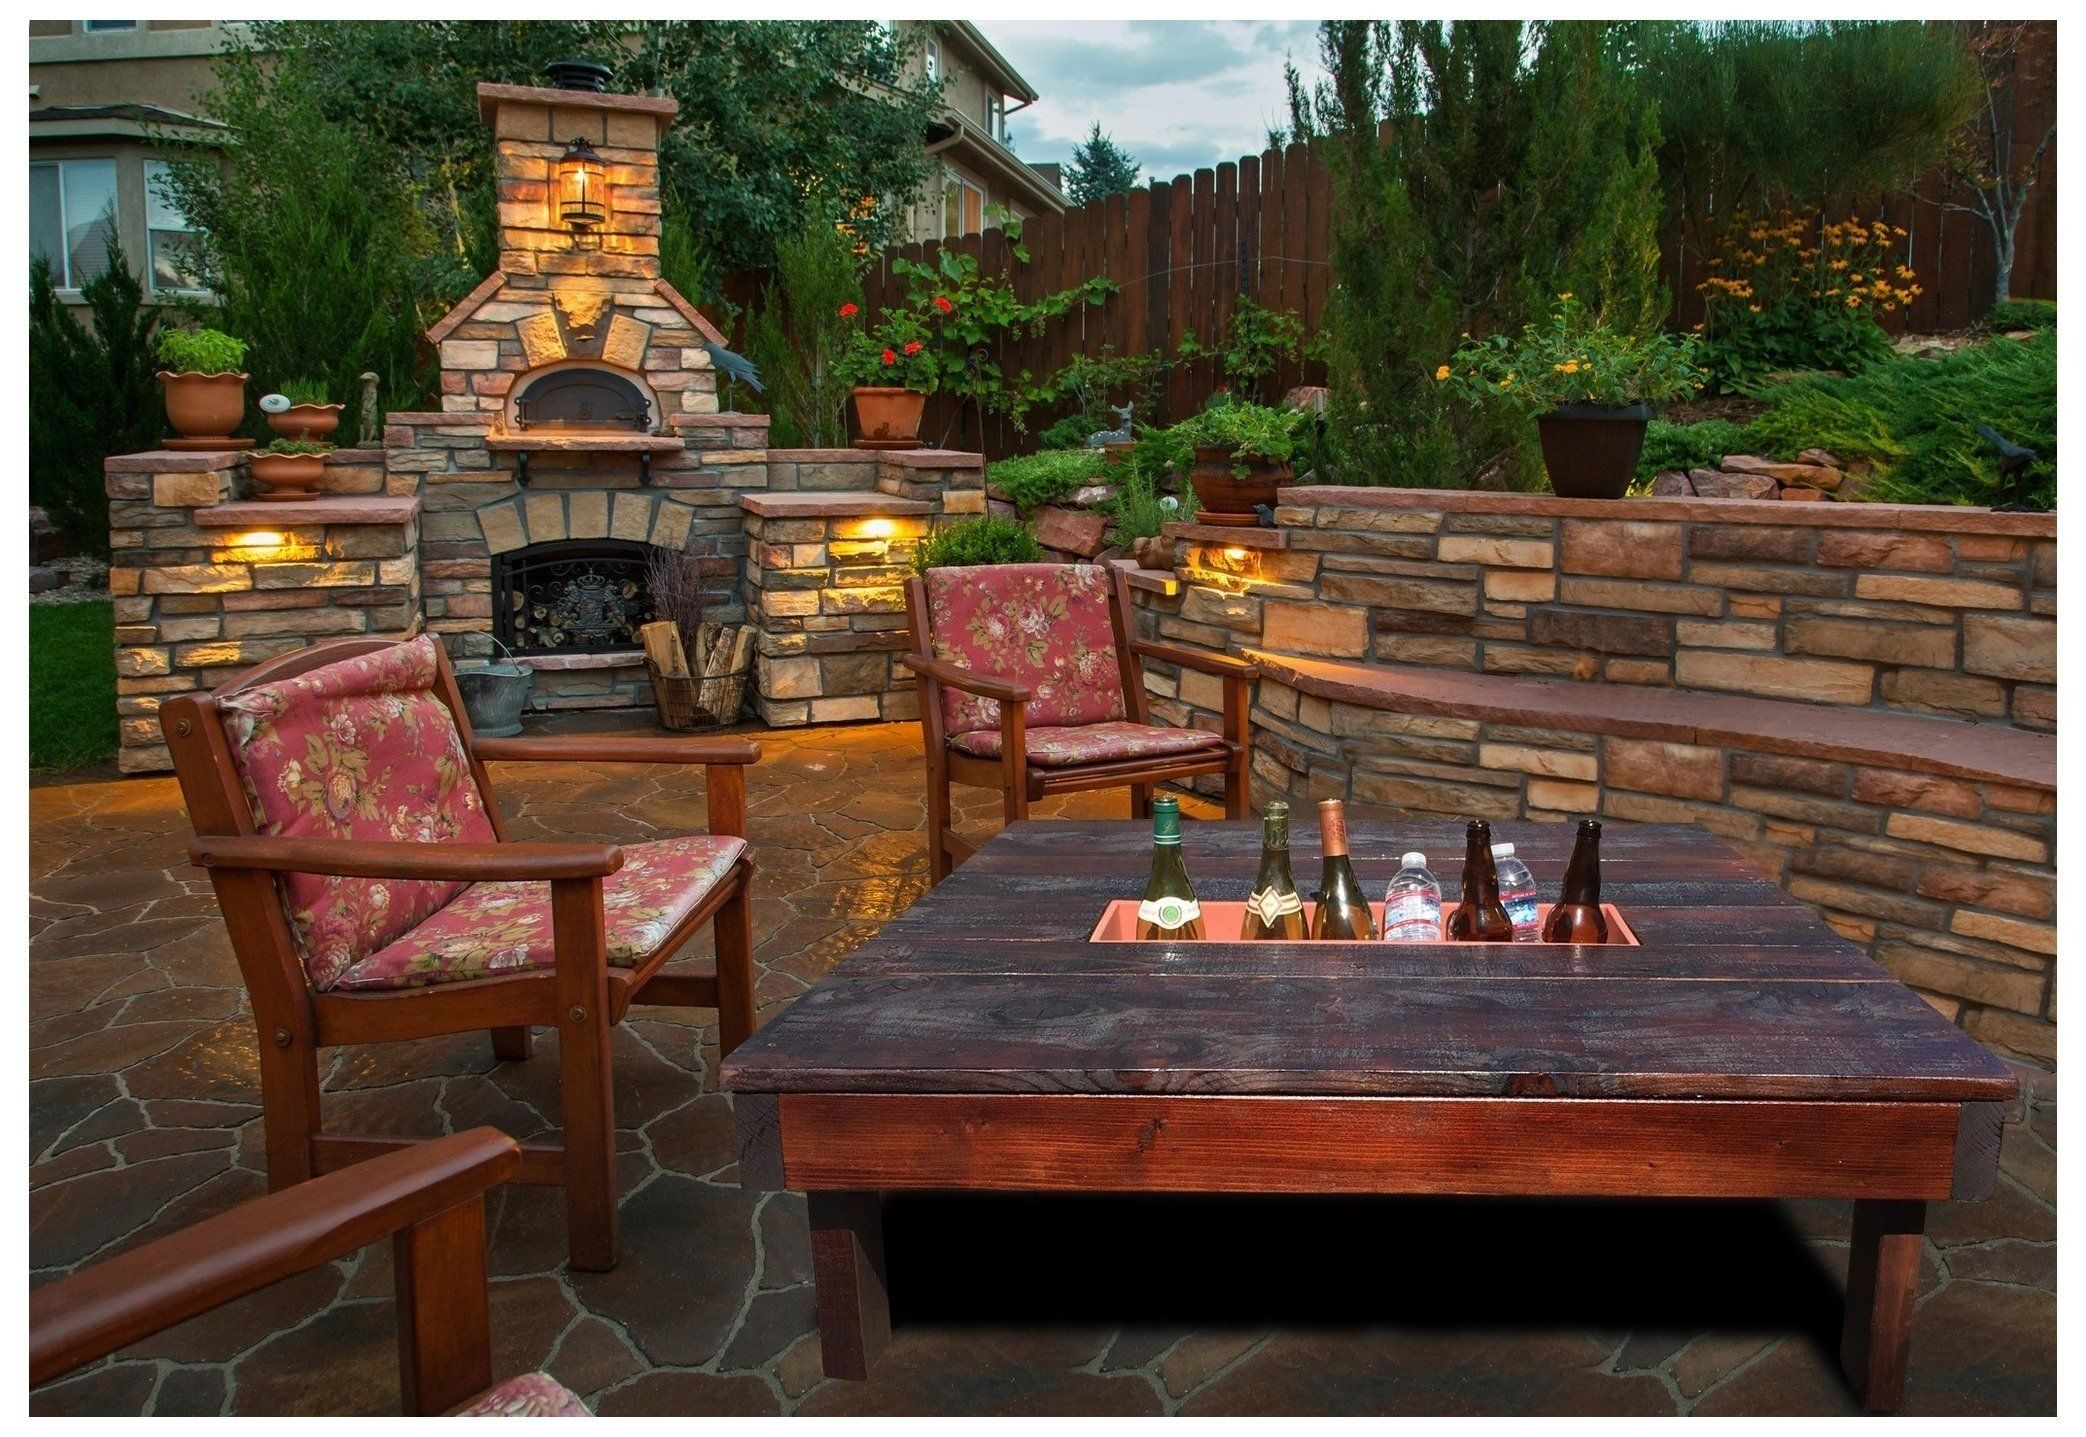 Garden Table With Fire Pit In Middle